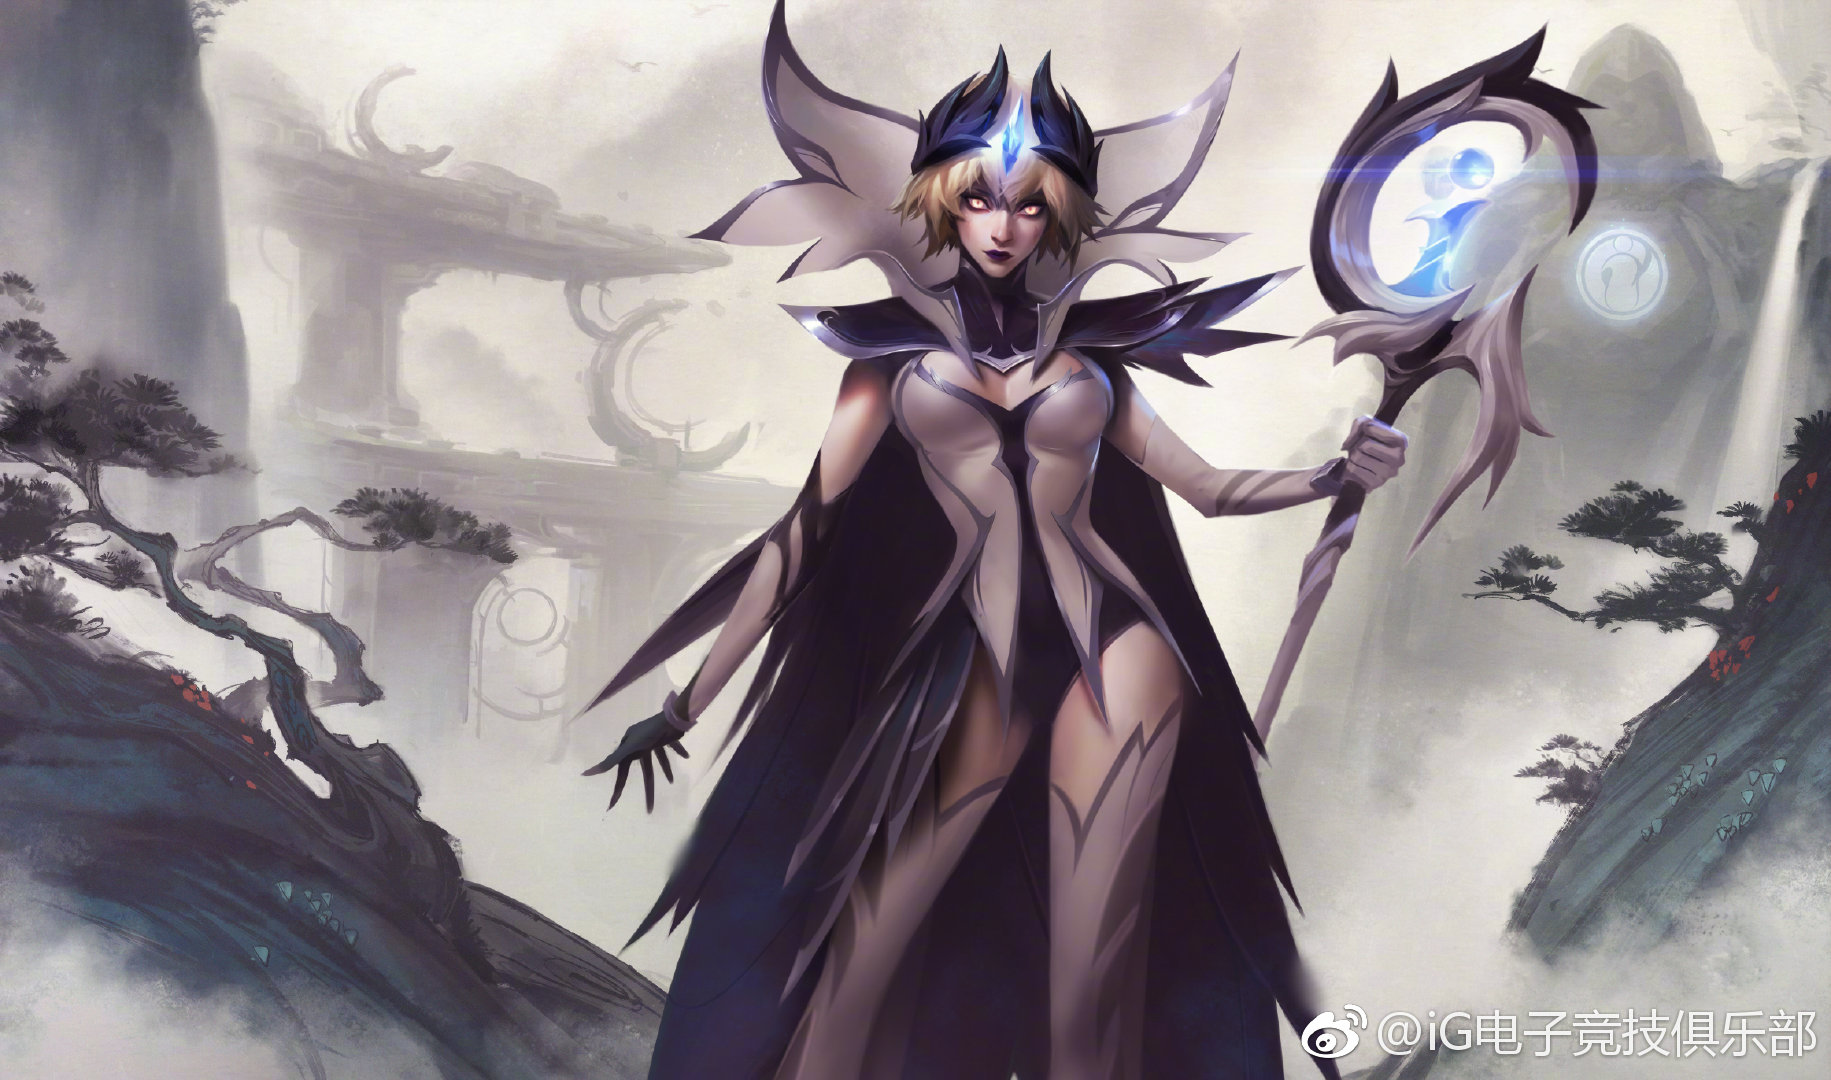 General 1831x1080 League of Legends LeBlanc (League of Legends) fantasy girl PC gaming